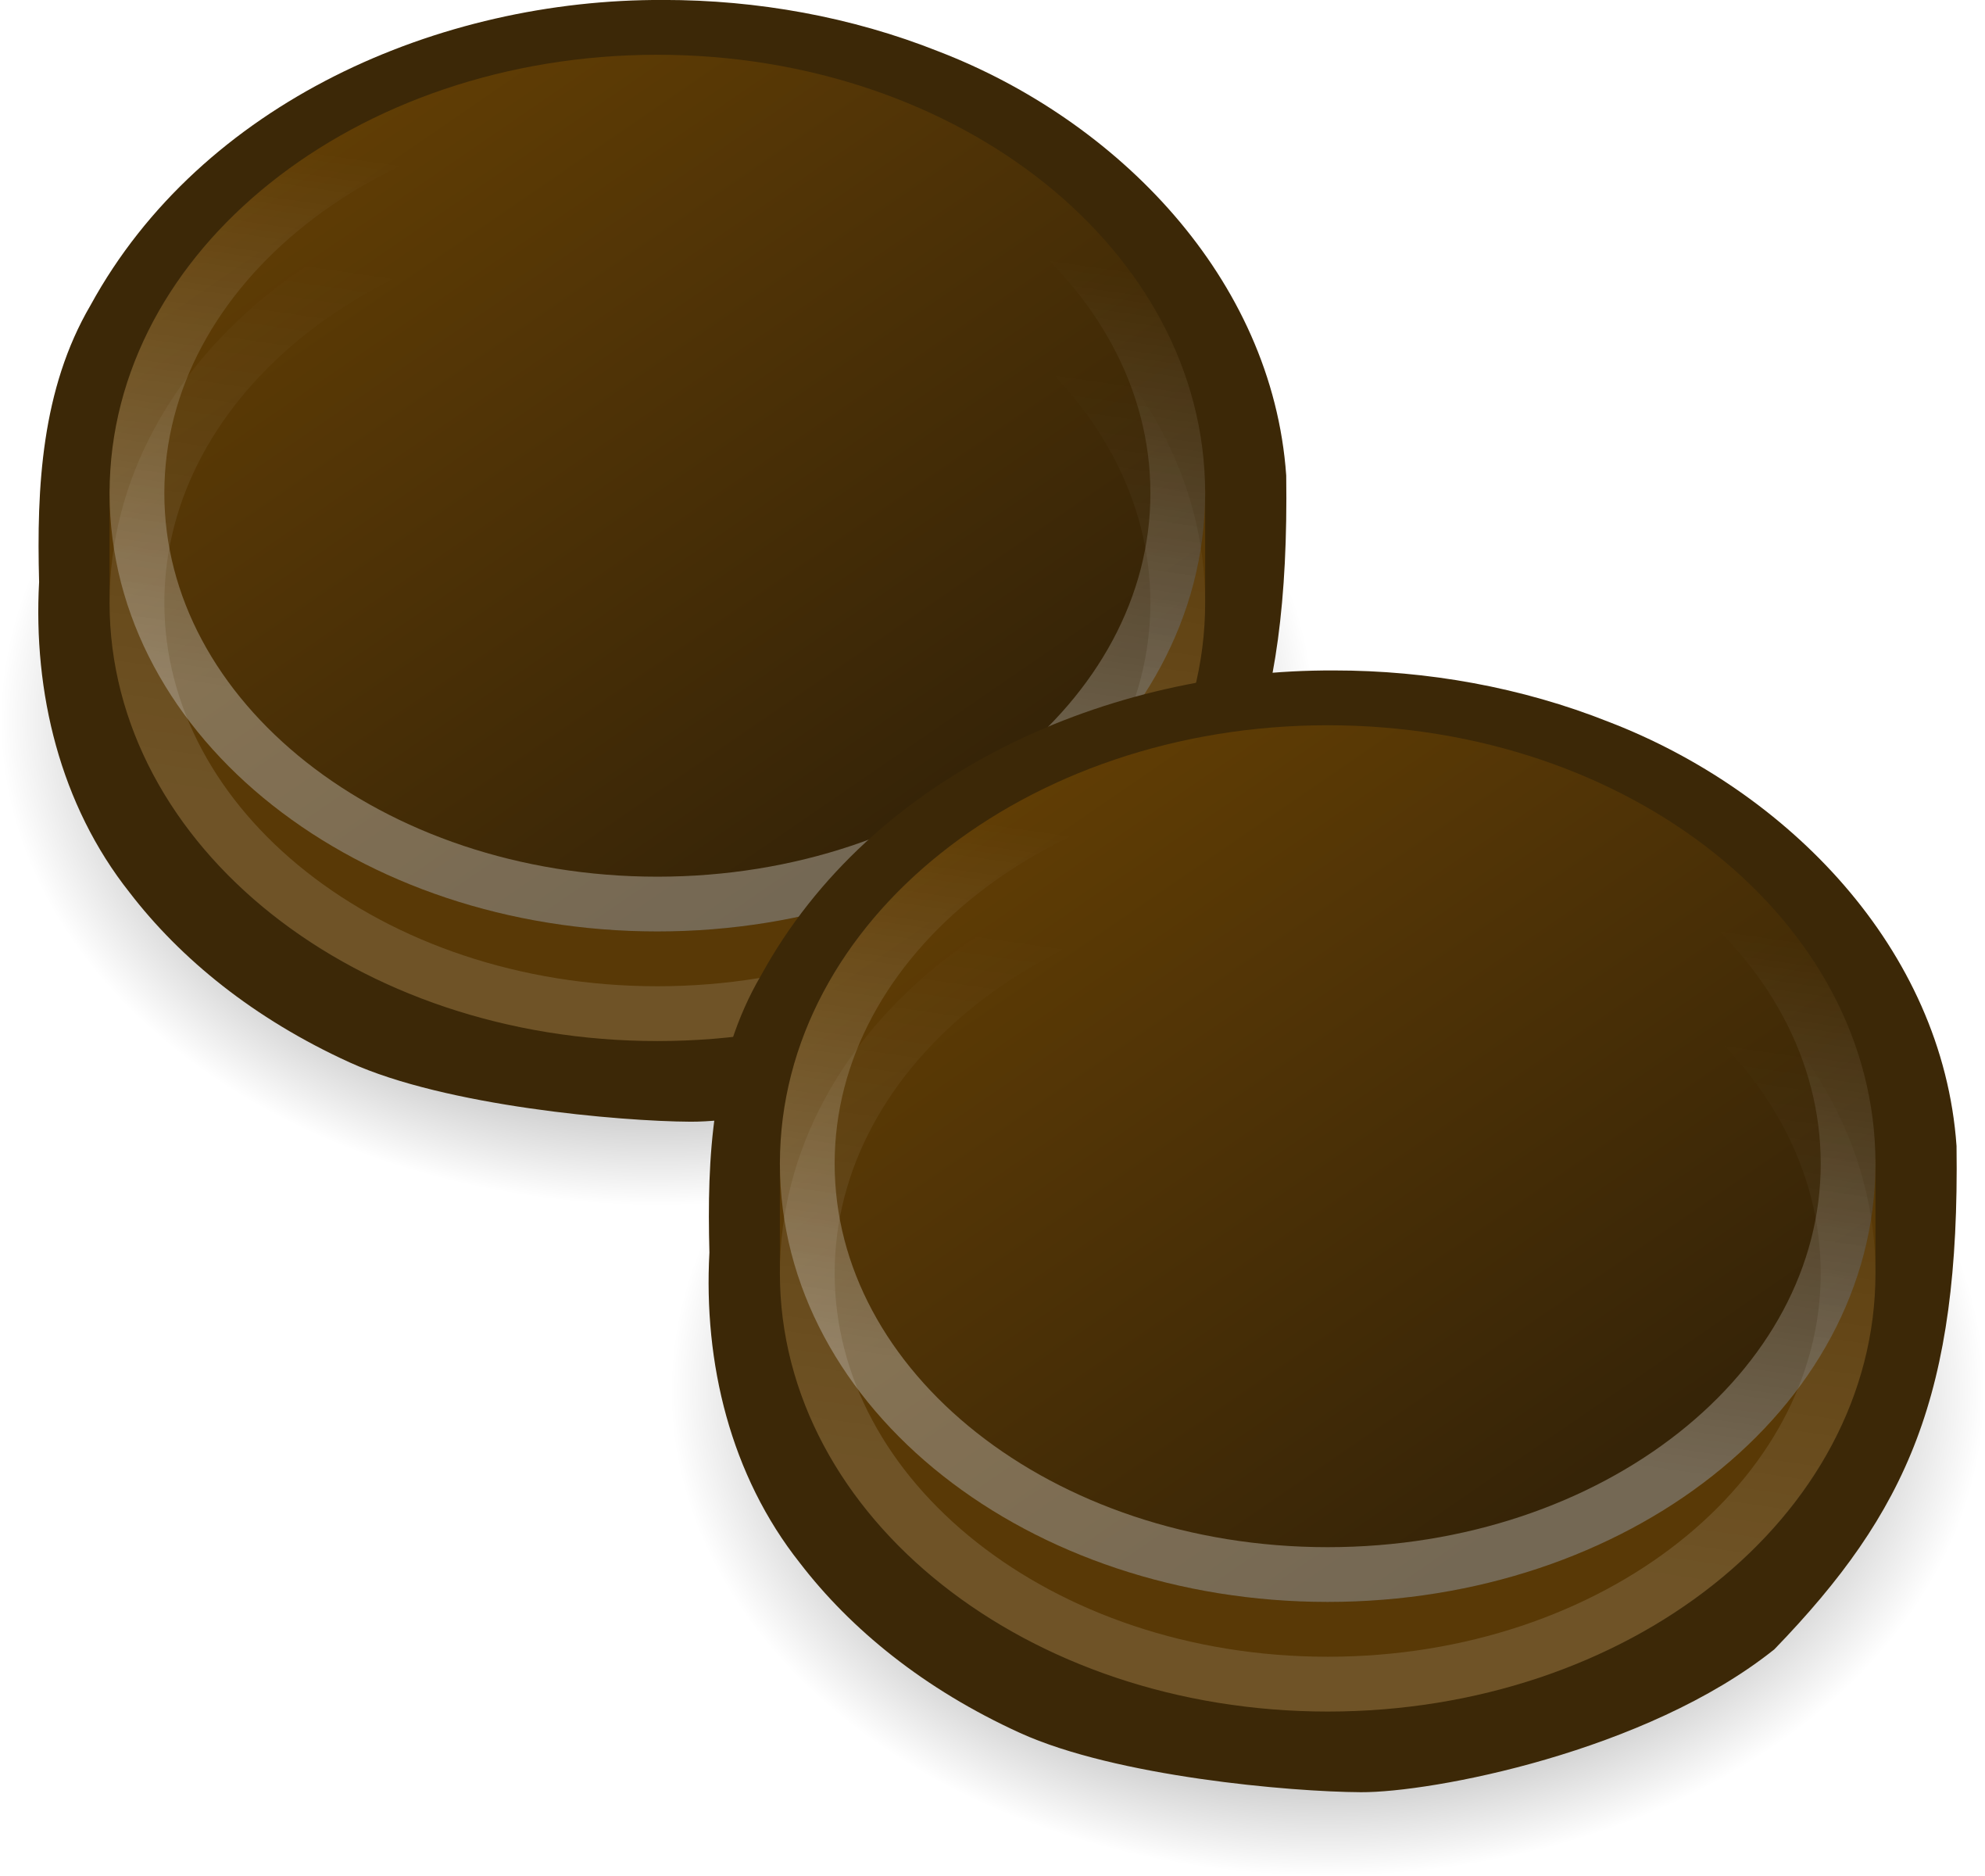 Coffee grounds clipart #9